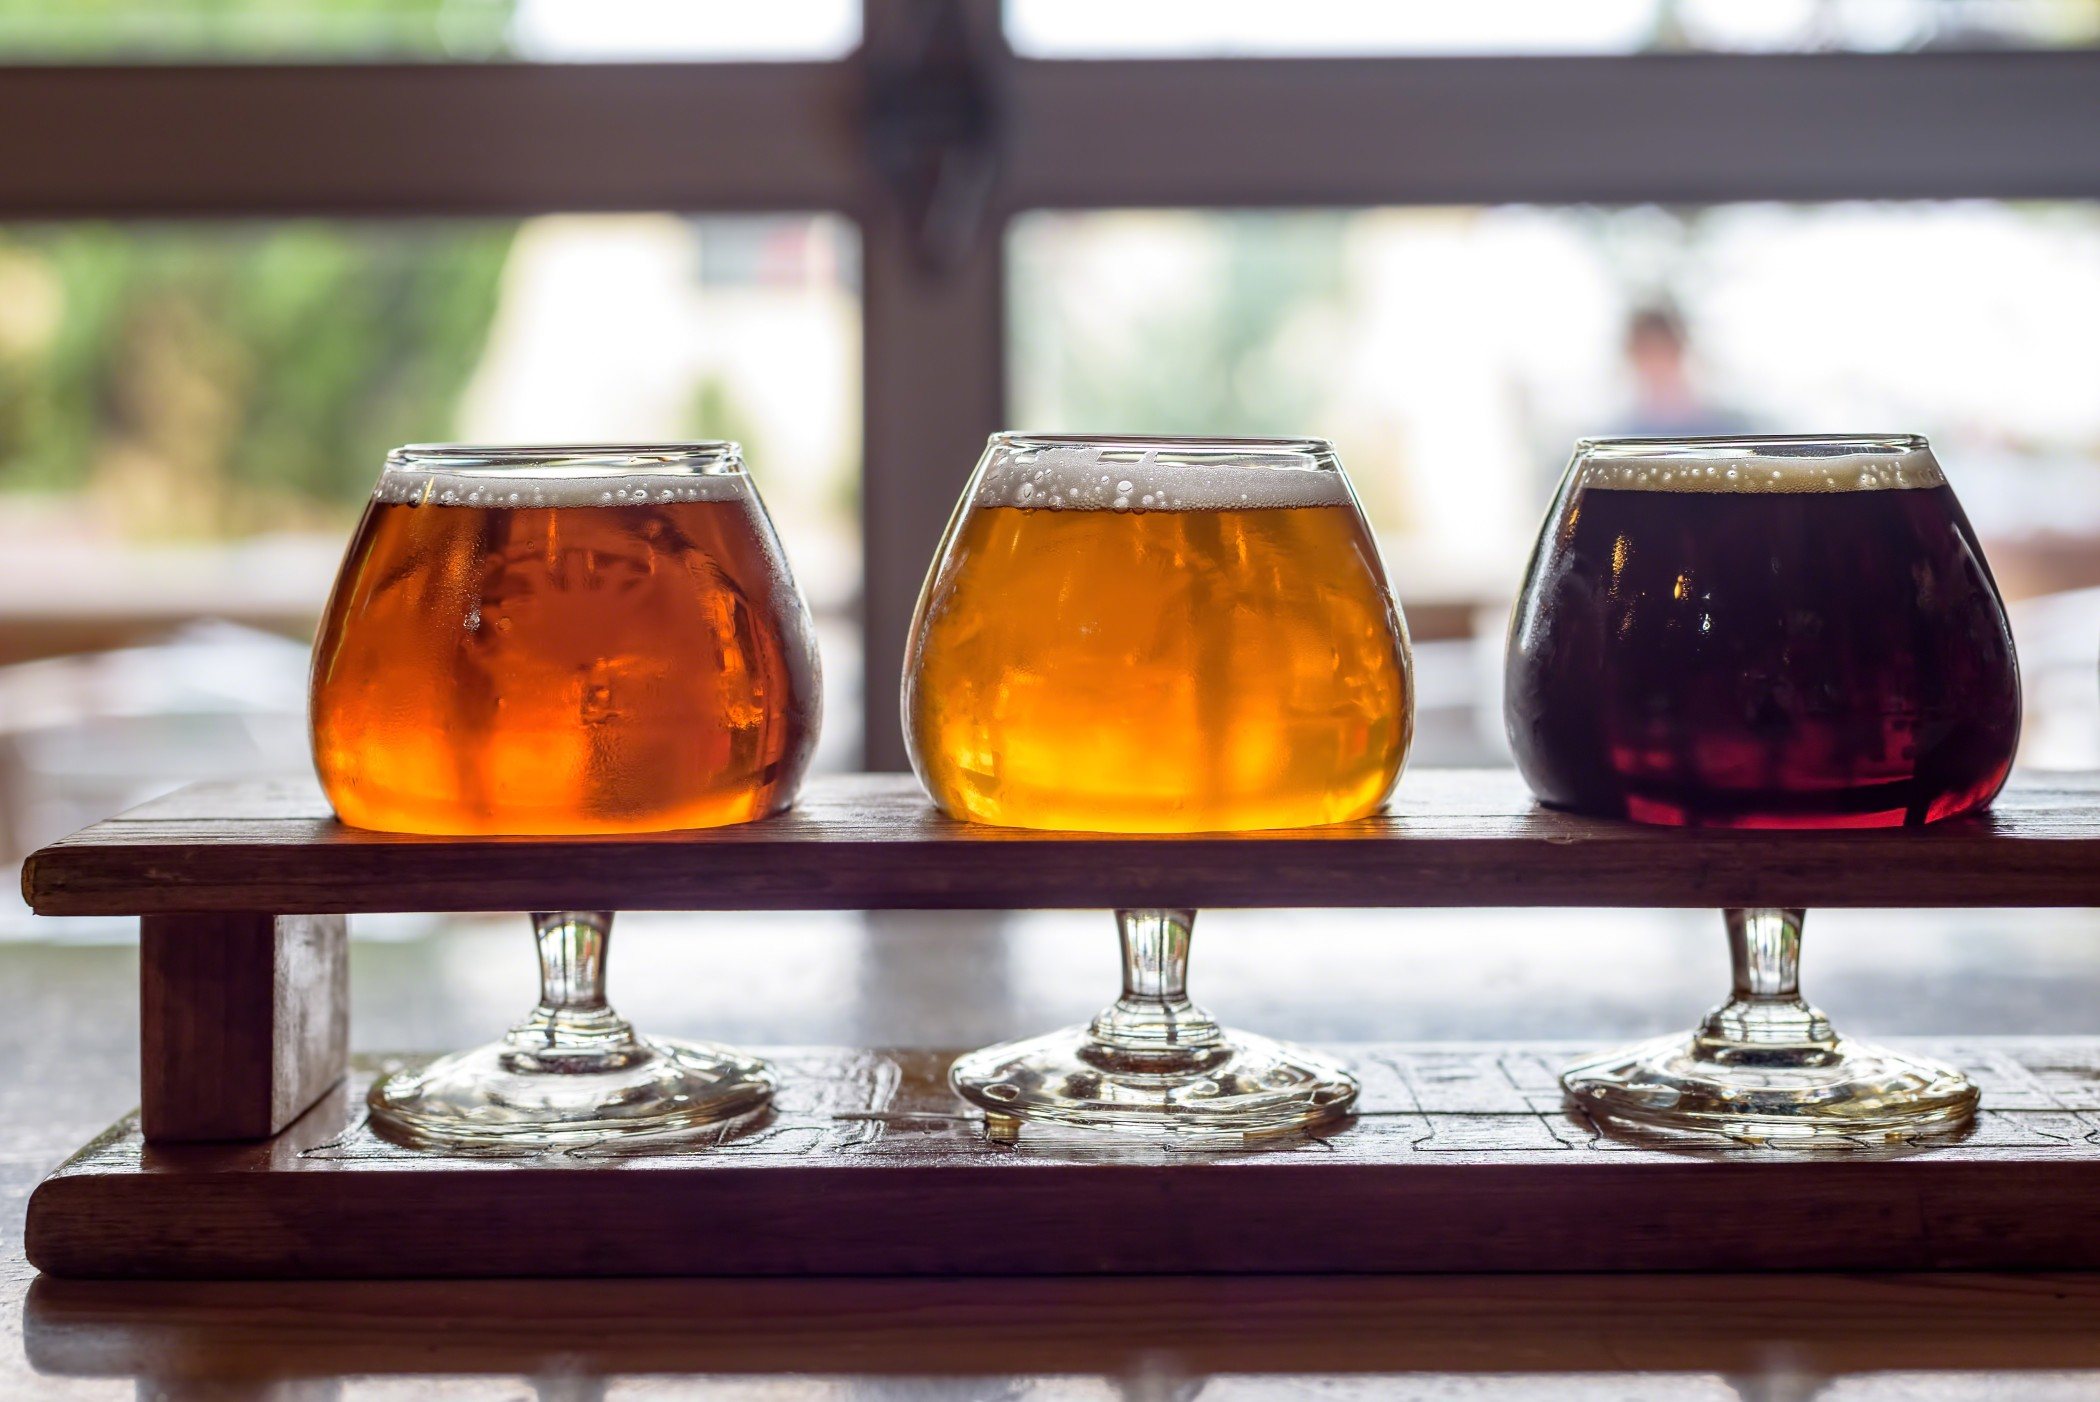 7 Adult and Couples Things to Do in San Diego - craft beer tasting